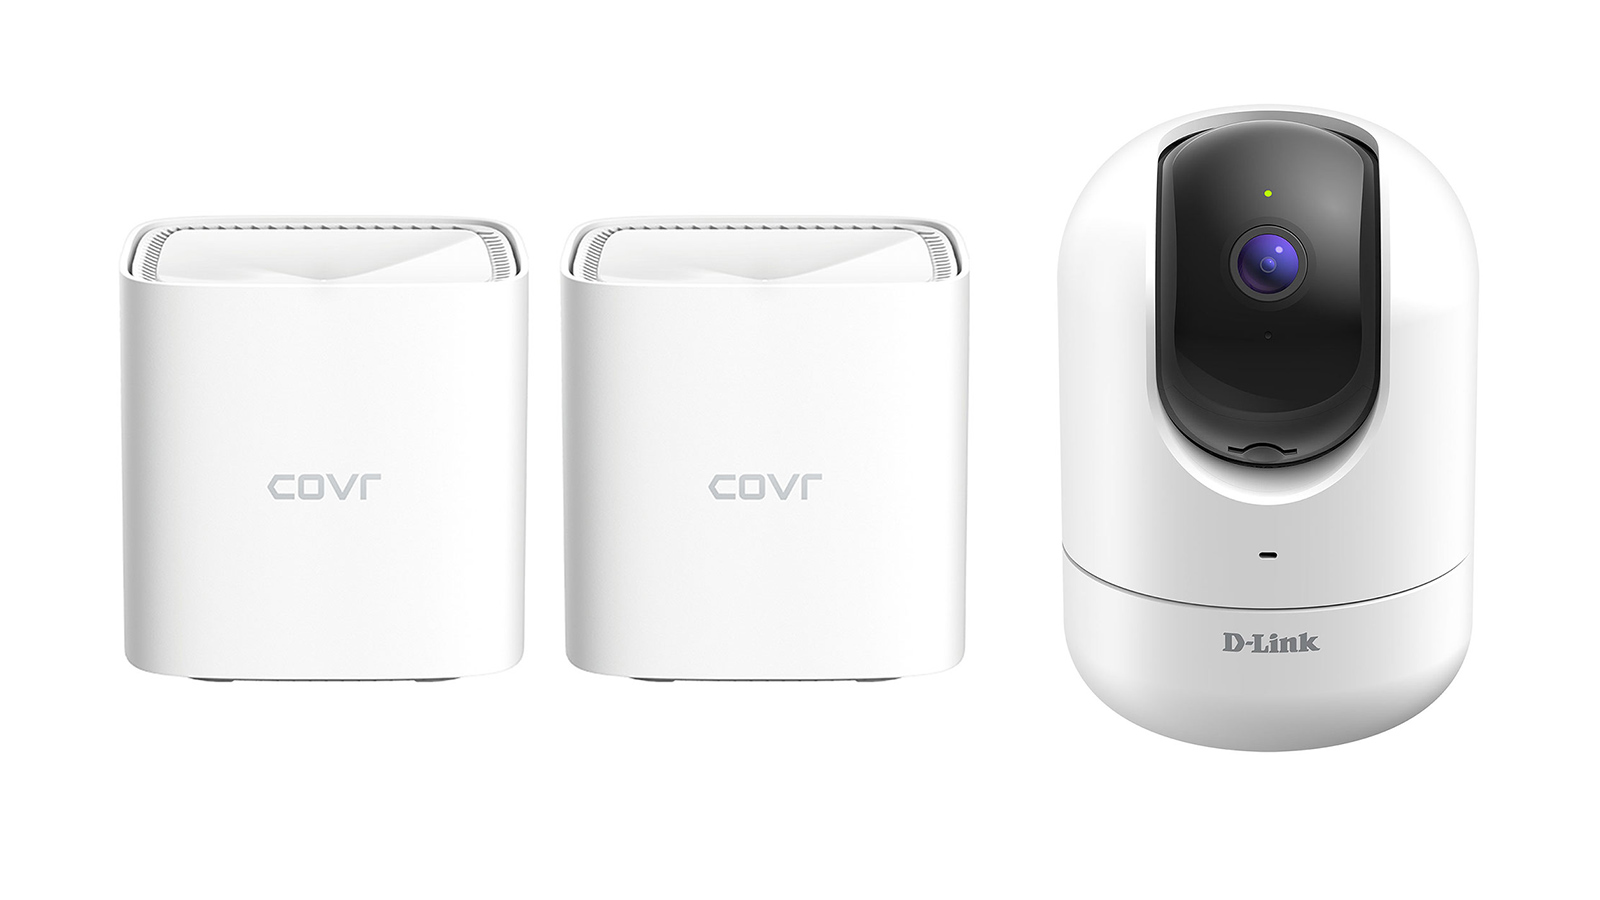 D-Link security camera and covr